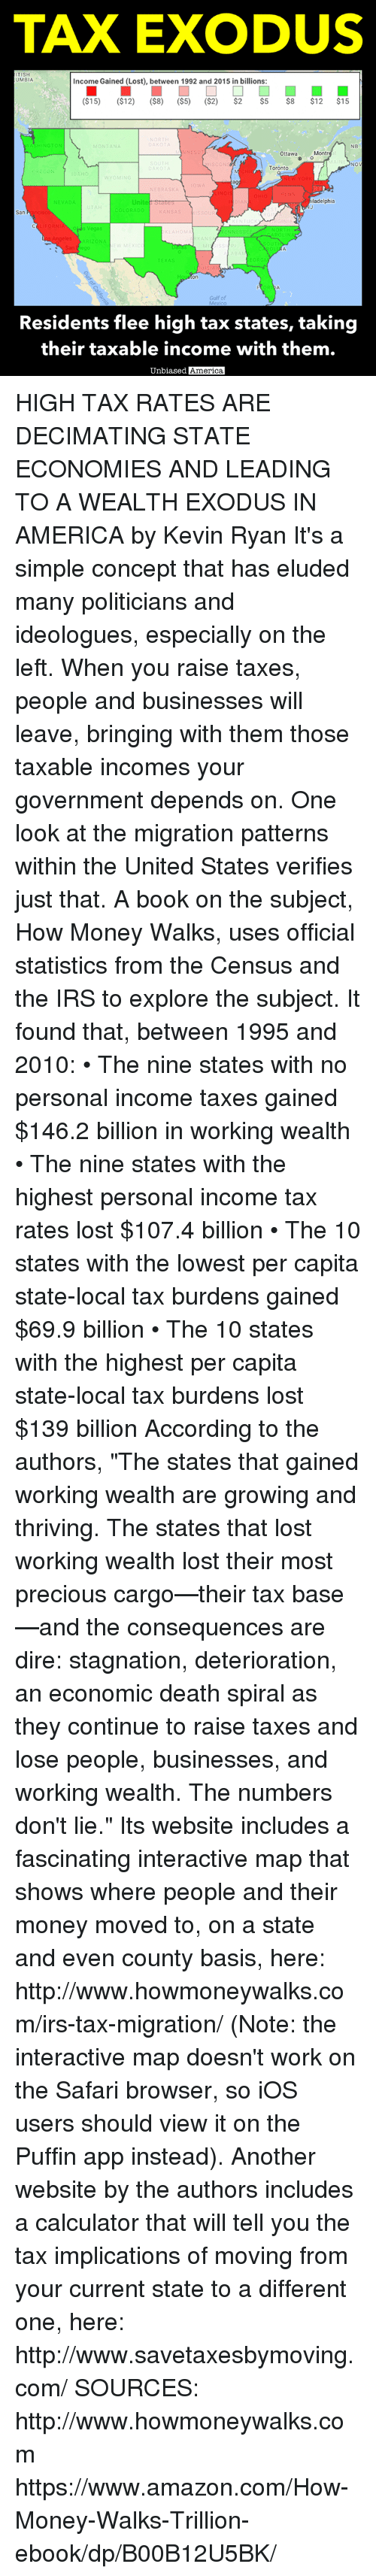 """Amazon, America, and Irs: TAX EXODUS  ITISH  UMBIA  Income Gained (Lost), between 1992 and 2015 in billions:  ($15)  ($12)  ($8) ($5) ($2)  $2  $5  $8  $12  $15  NORTH  DAKOTA  NB  NNESO  Montr  Ottawa  SOUTH  VISCON  NOV  Toronto  DAKO  OREGON  DAHO  NEBRASKA  PENN  Unite  States  iladelphia  NEVADA  LORADO  San  KANSAS  SSOUR  LIFORN  s Vegas  NORTH  ENNESSEE  AROL  geles  ARIZONA  TEXAS  EORG  On  FOR  Gulf of  Residents flee high tax states, taking  their taxable income with them.  biased America, HIGH TAX RATES ARE DECIMATING STATE ECONOMIES AND LEADING TO A WEALTH EXODUS IN AMERICA by Kevin Ryan  It's a simple concept that has eluded many politicians and ideologues, especially on the left.  When you raise taxes, people and businesses will leave, bringing with them those taxable incomes your government depends on.  One look at the migration patterns within the United States verifies just that.  A book on the subject, How Money Walks, uses official statistics from the Census and the IRS to explore the subject.  It found that, between 1995 and 2010:  • The nine states with no personal income taxes gained $146.2 billion in working wealth • The nine states with the highest personal income tax rates lost $107.4 billion • The 10 states with the lowest per capita state-local tax burdens gained $69.9 billion • The 10 states with the highest per capita state-local tax burdens lost $139 billion  According to the authors, """"The states that gained working wealth are growing and thriving. The states that lost working wealth lost their most precious cargo—their tax base—and the consequences are dire: stagnation, deterioration, an economic death spiral as they continue to raise taxes and lose people, businesses, and working wealth. The numbers don't lie.""""  Its website includes a fascinating interactive map that shows where people and their money moved to, on a state and even county basis, here:  http://www.howmoneywalks.com/irs-tax-migration/ (Note: the interactive map doesn't"""